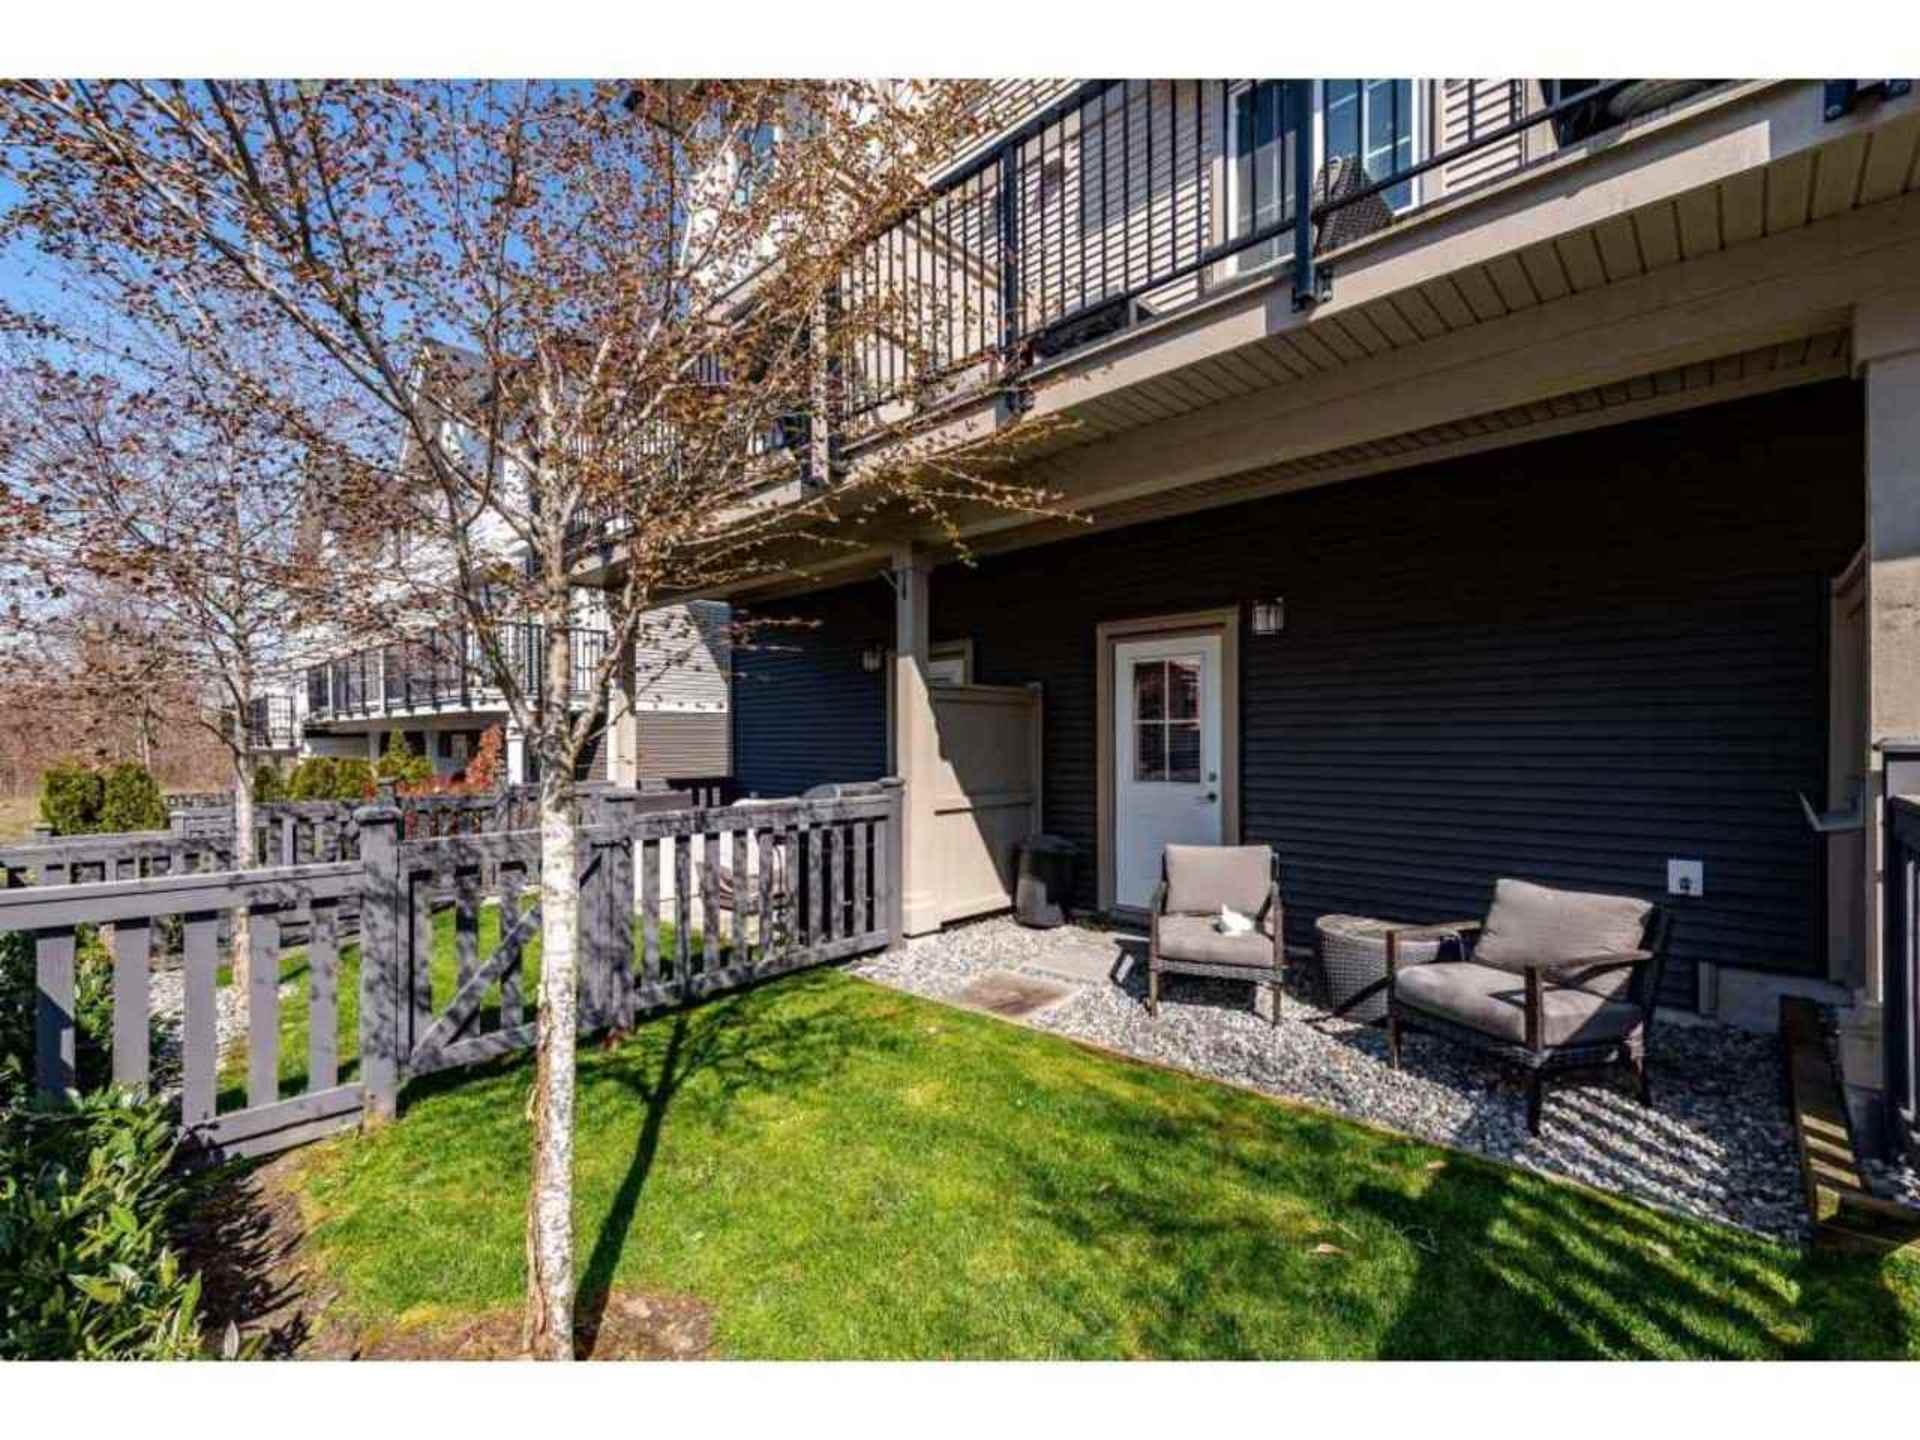 Fenced yard and patio area. at 94 - 30989 Westridge Place, Abbotsford West, Abbotsford